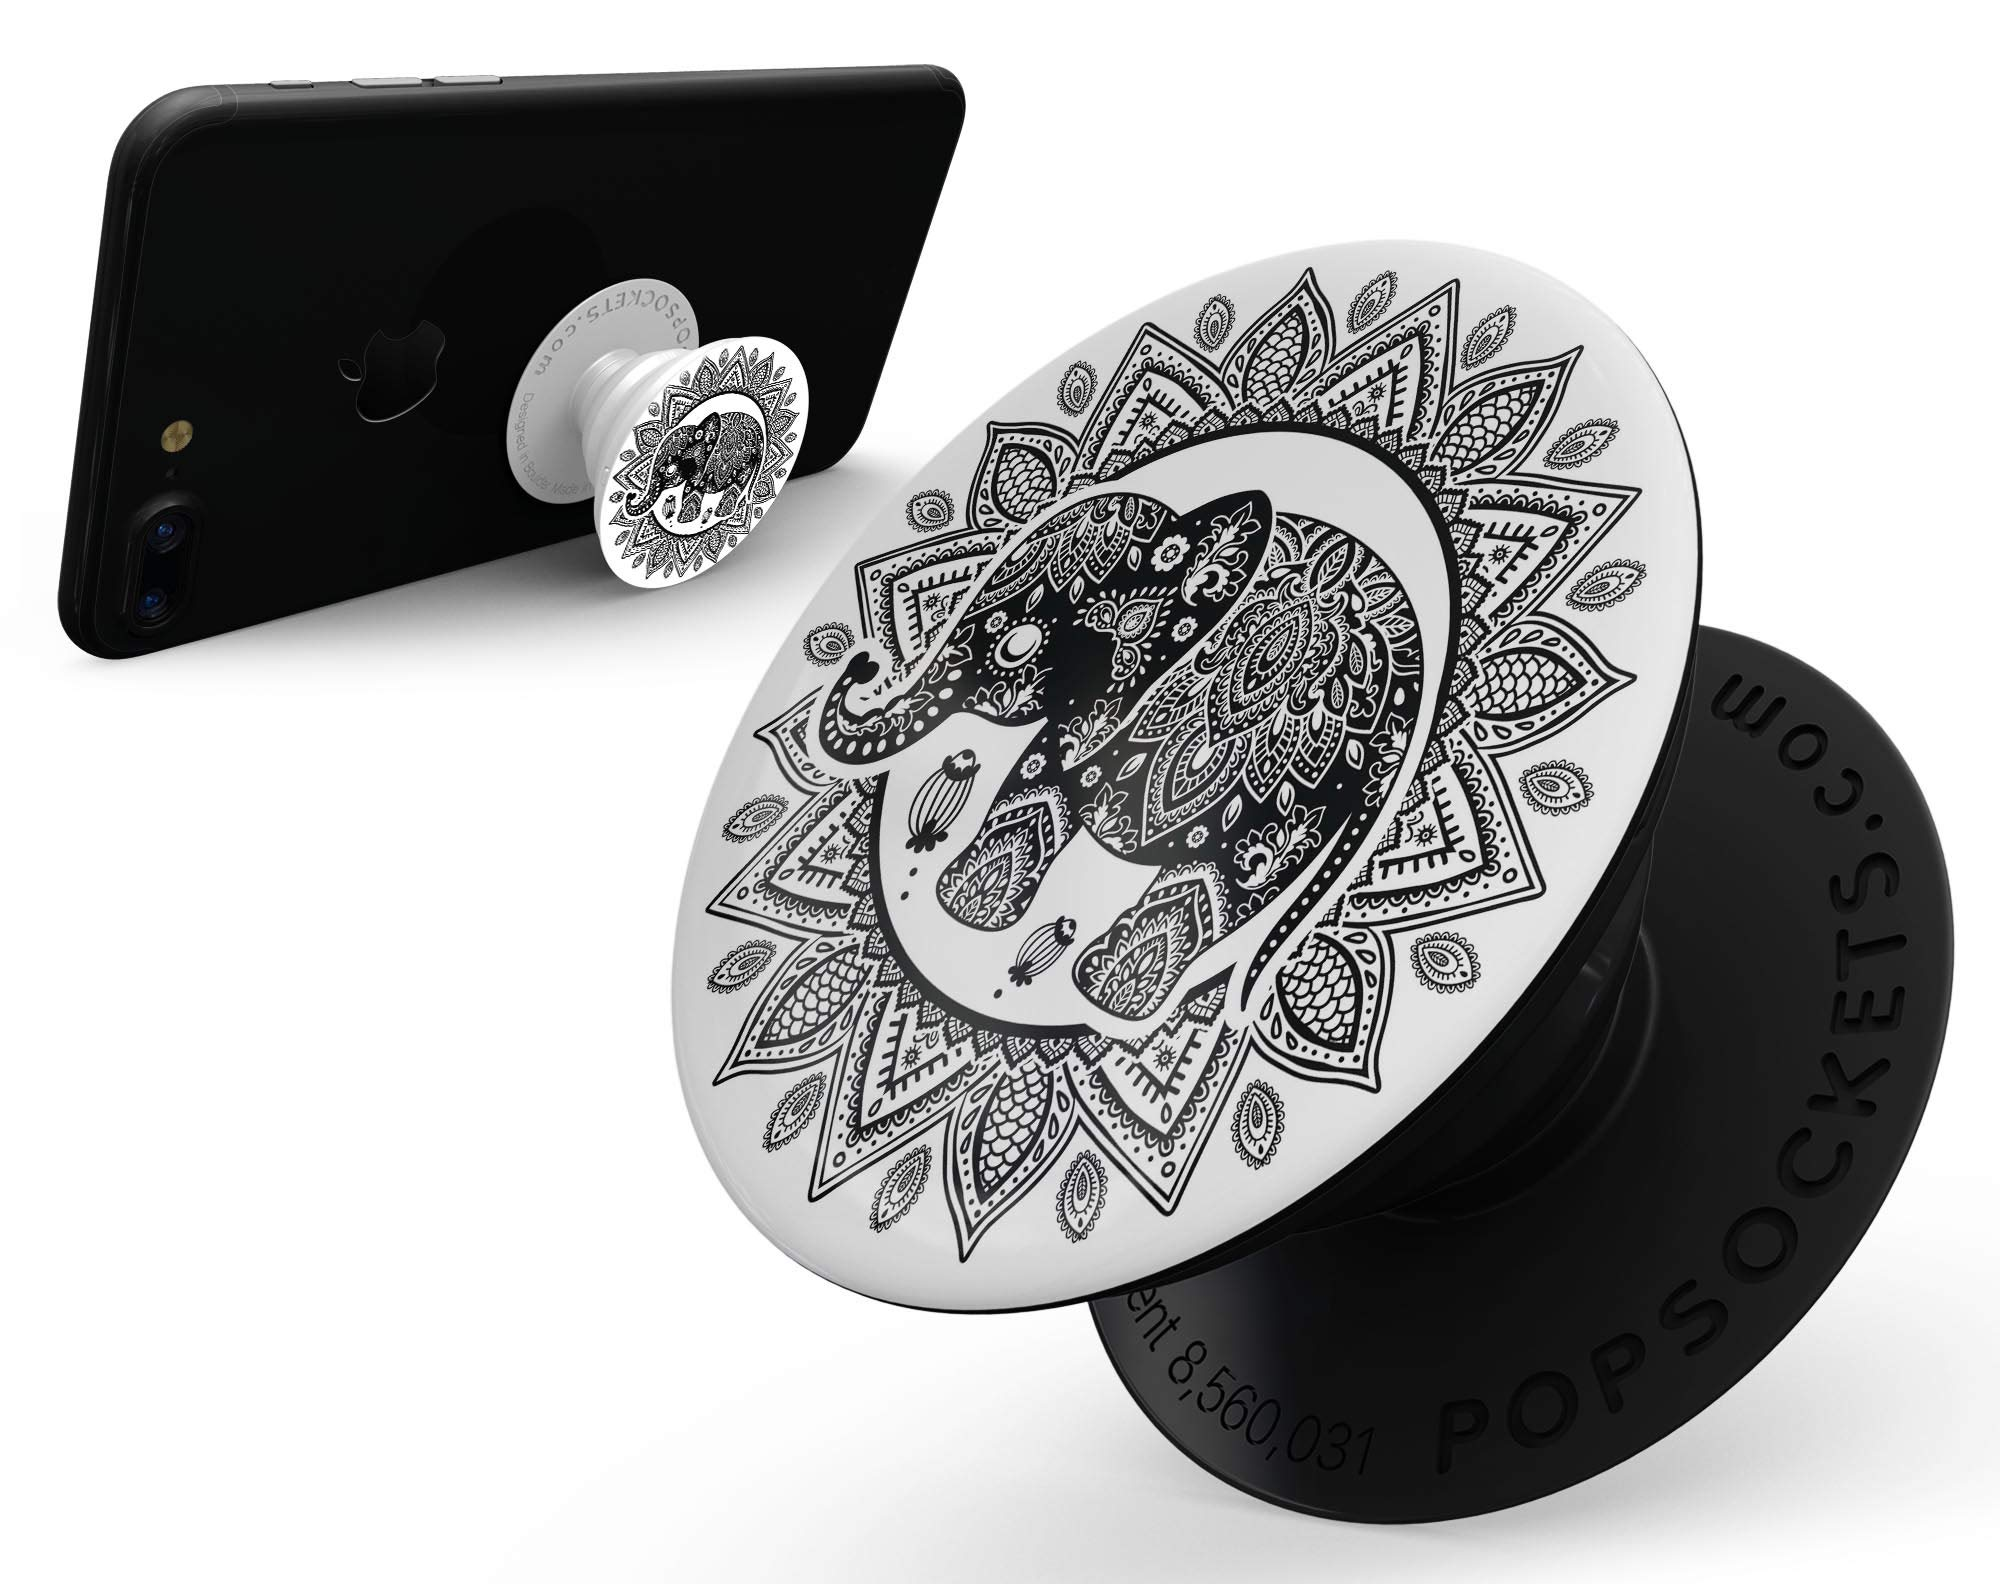 Indian Mandala Elephant - DesignSkinz Premium Decal Sticker Skin-Kit for PopSockets Smartphone Extendable Grip & Stand by iiRov (Image #2)